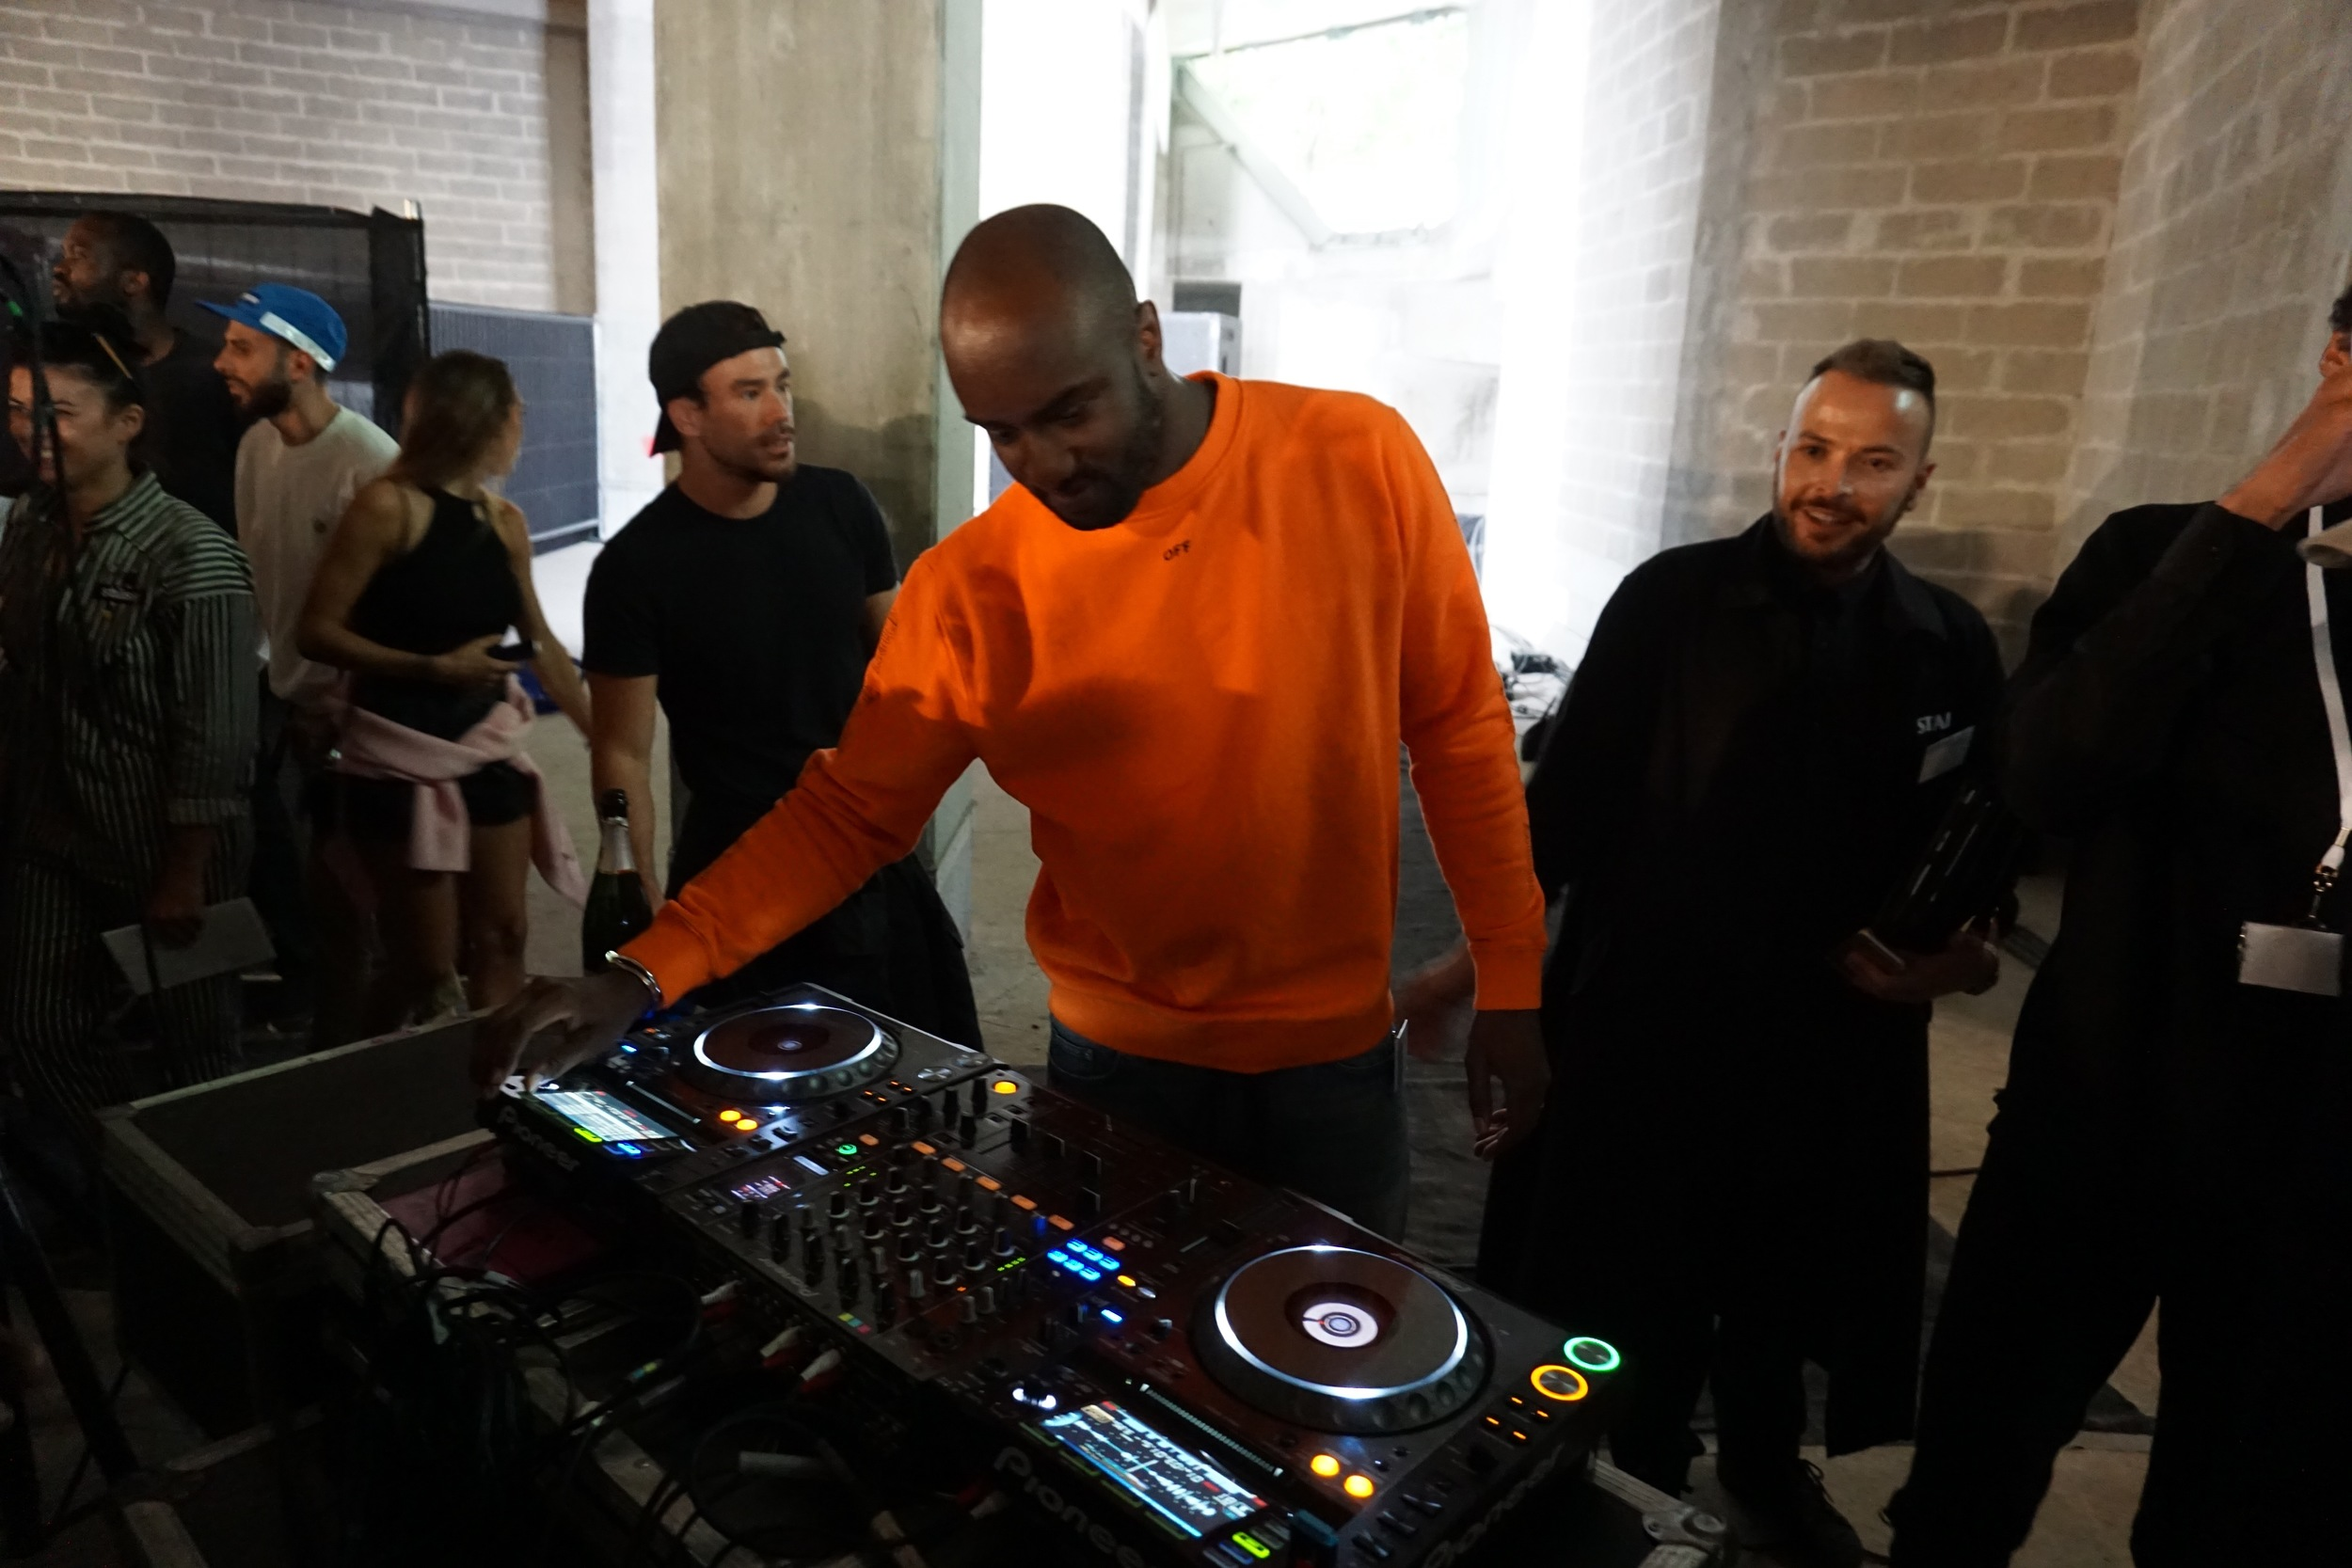 Virgil Abloh graces us with a DJ set backstage post-show at Off White men's runway collection.